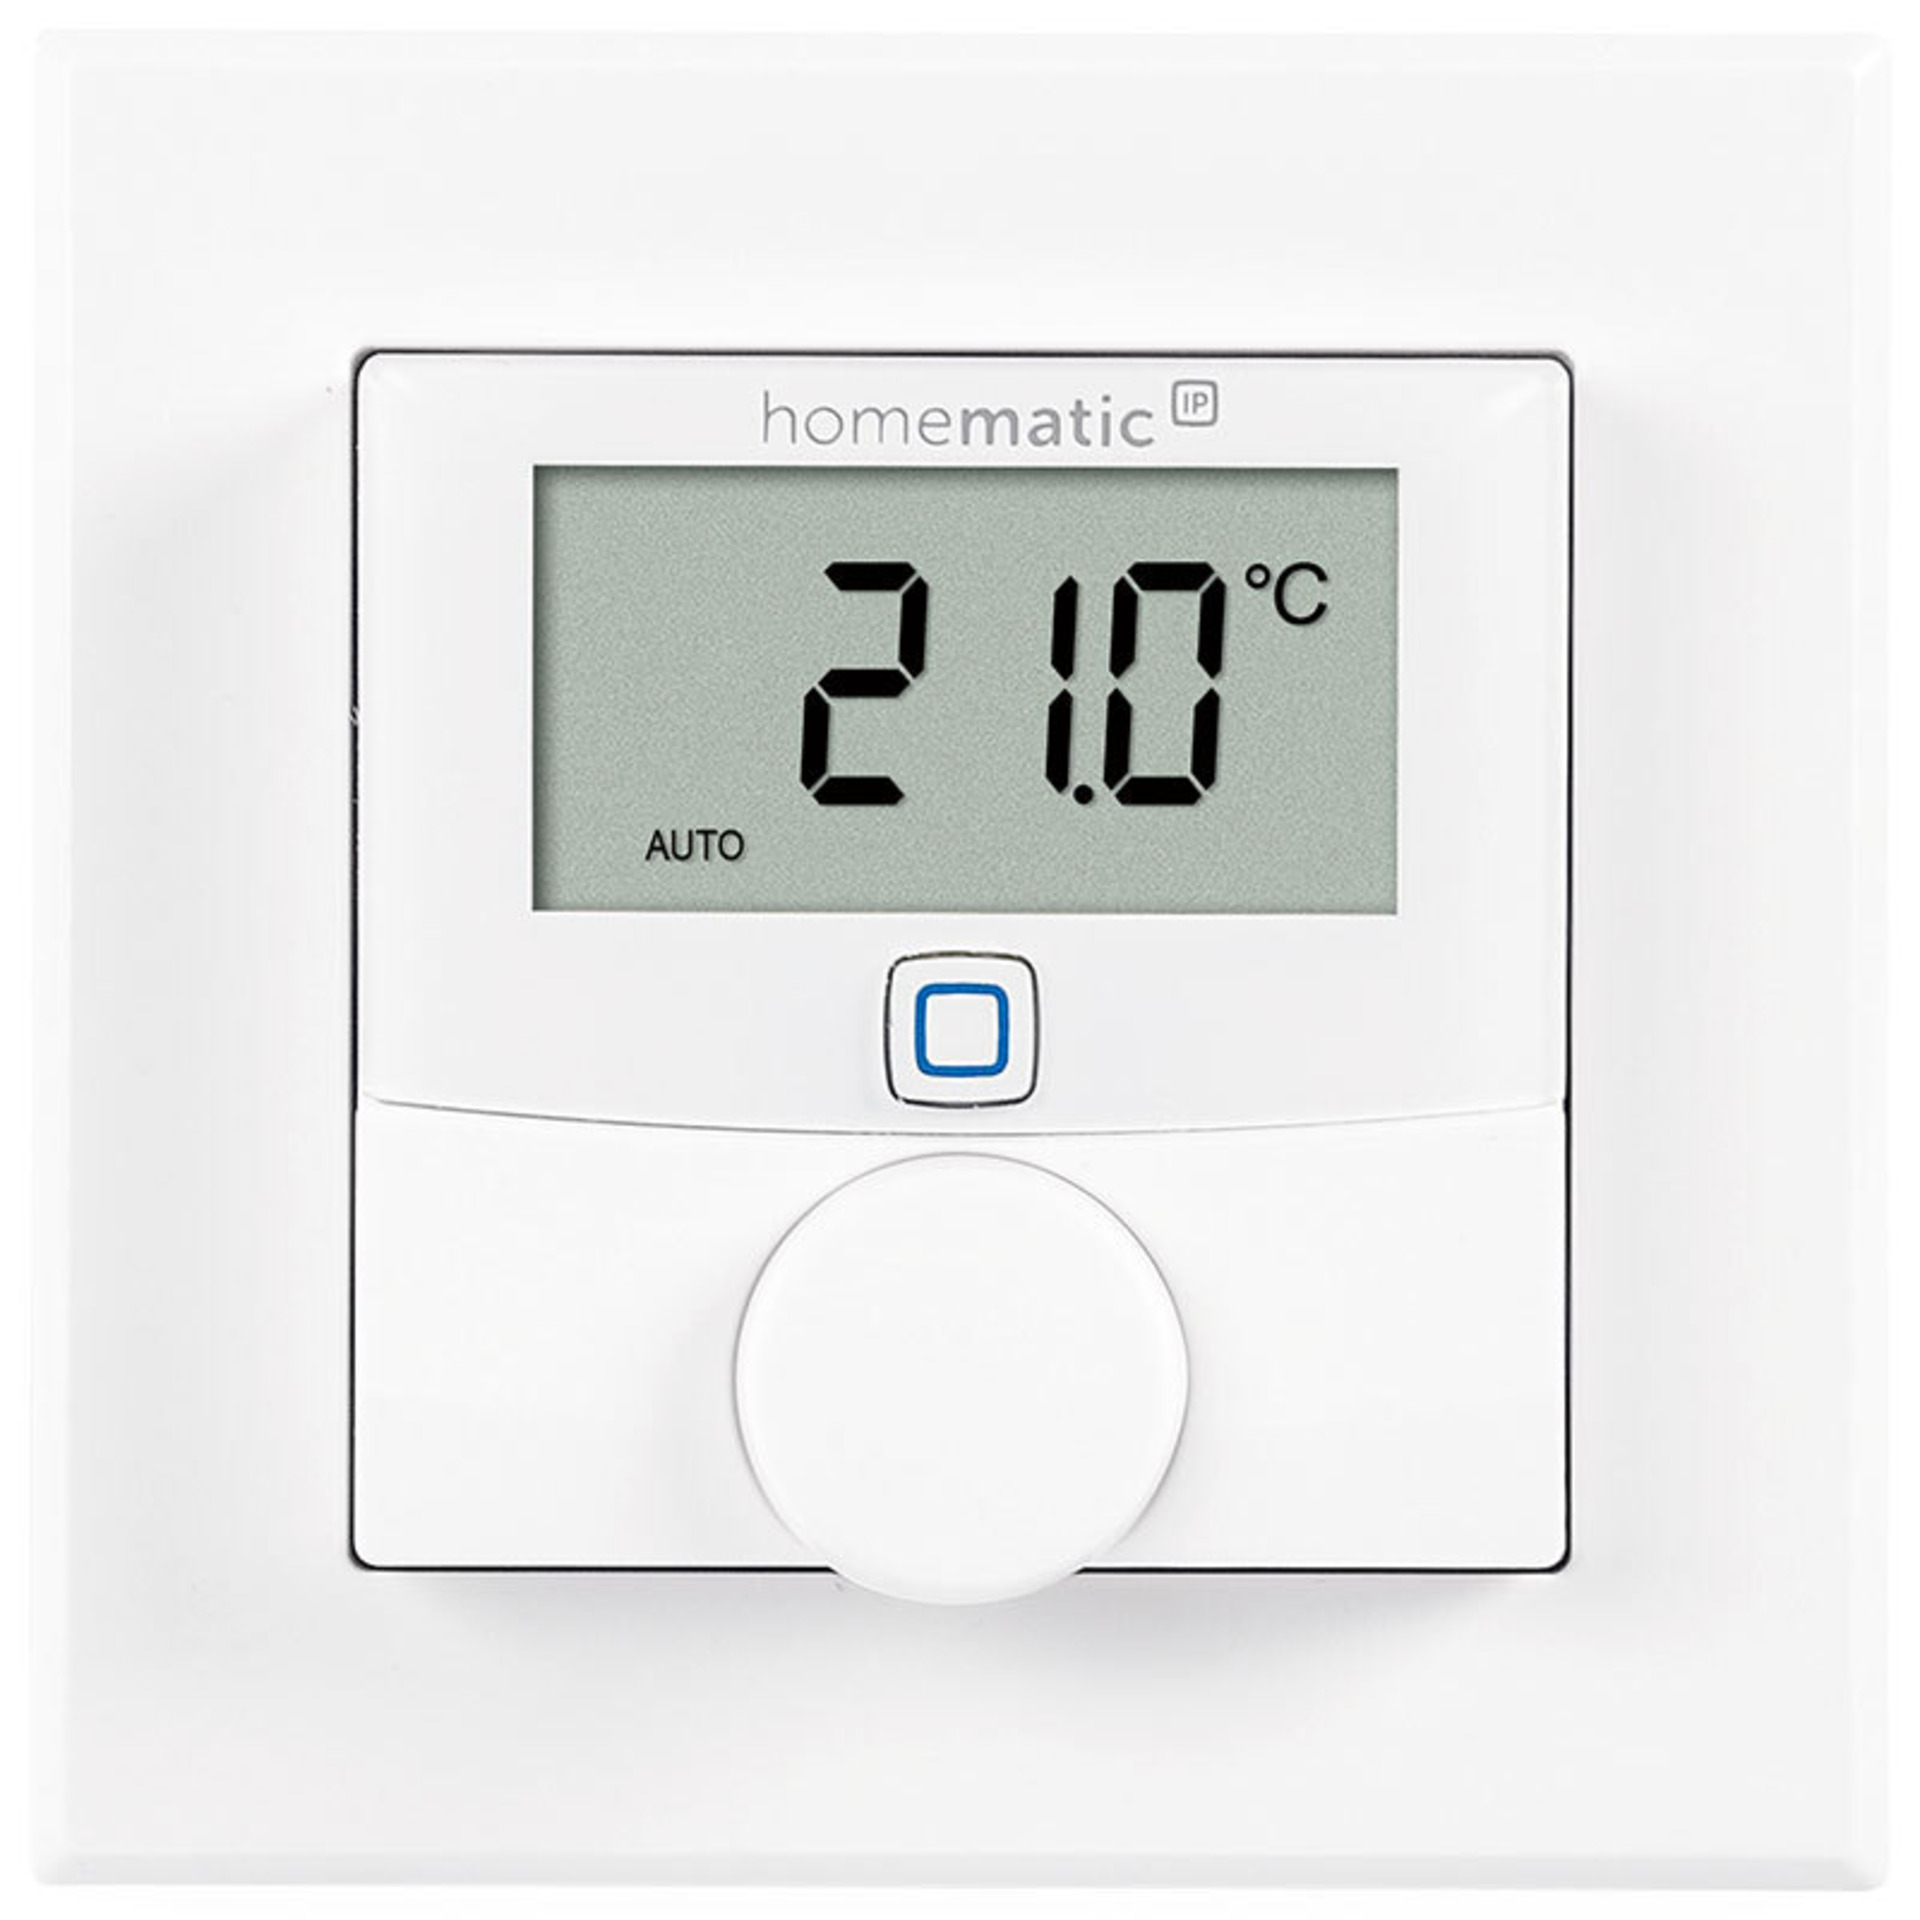 ELV Homematic IP Komplettbausatz Wandthermostat HmIP-WTH-2- für Smart Home - Hausautomation